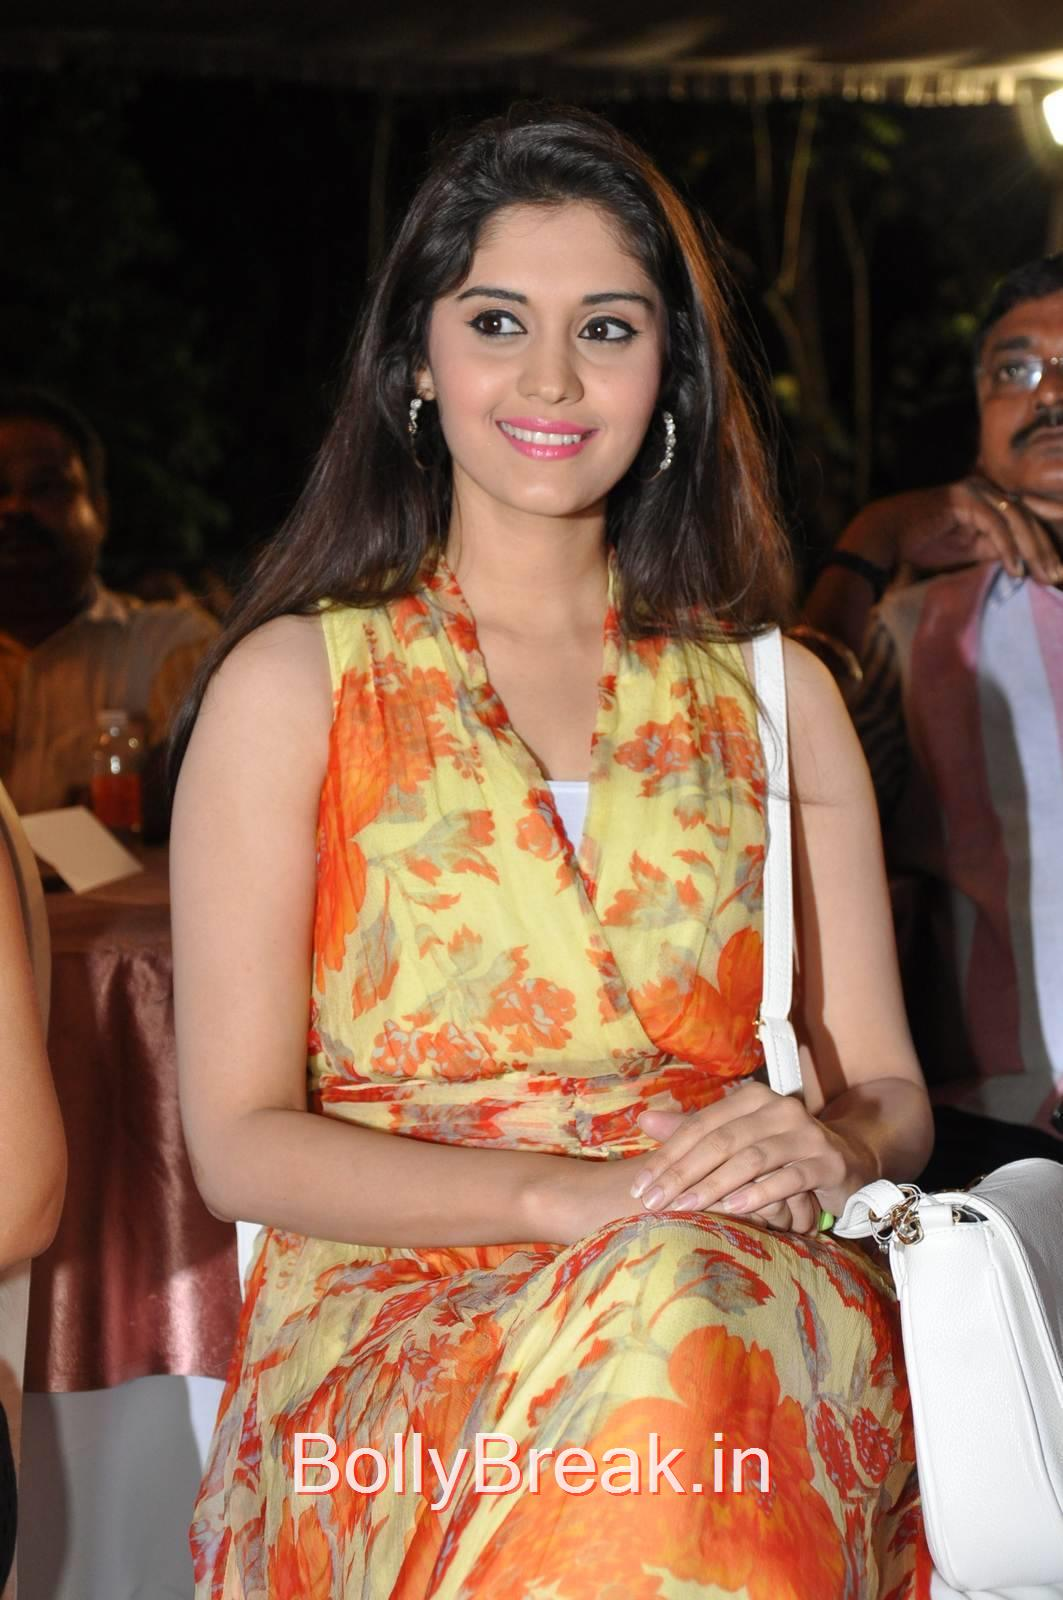 Surabhi Unseen Stills, Actress Surabhi Hot Photo gallery from an event